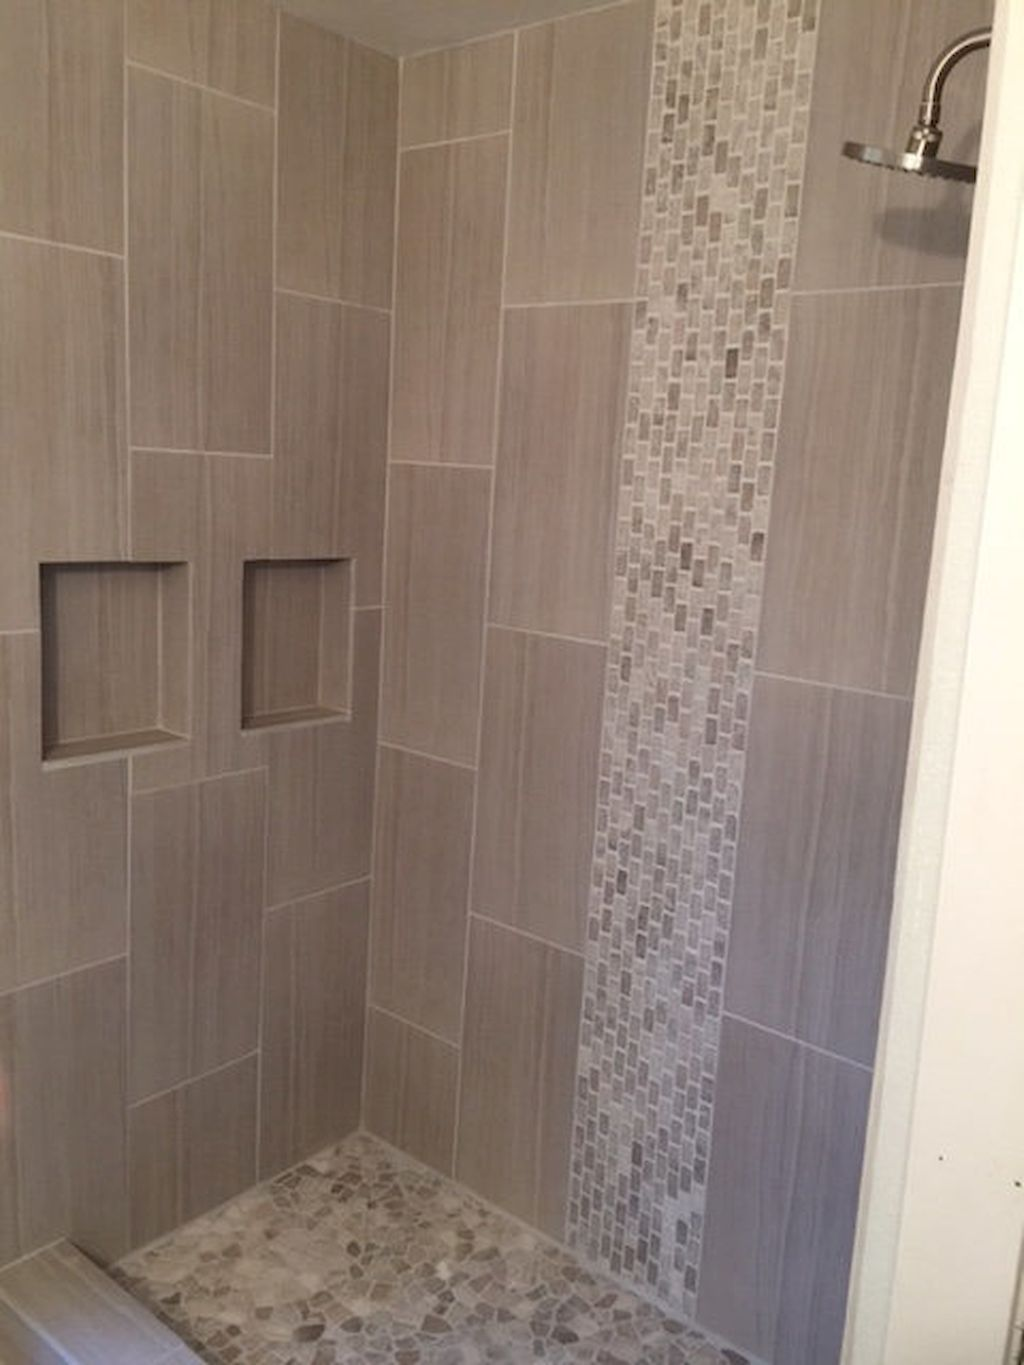 Awesome luxury subway tile shower designs ideas